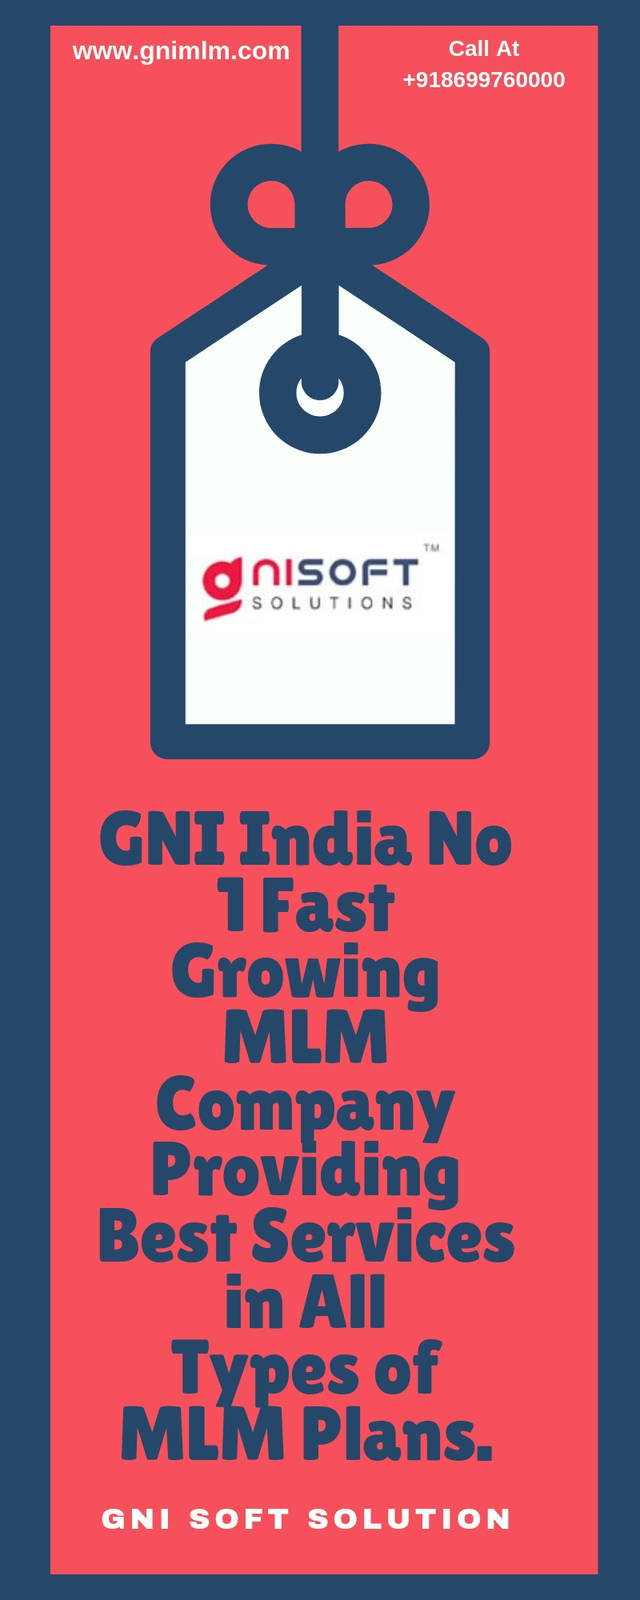 Gni india no 1 fast growing mlm company providing best services in all types of mlm plans.